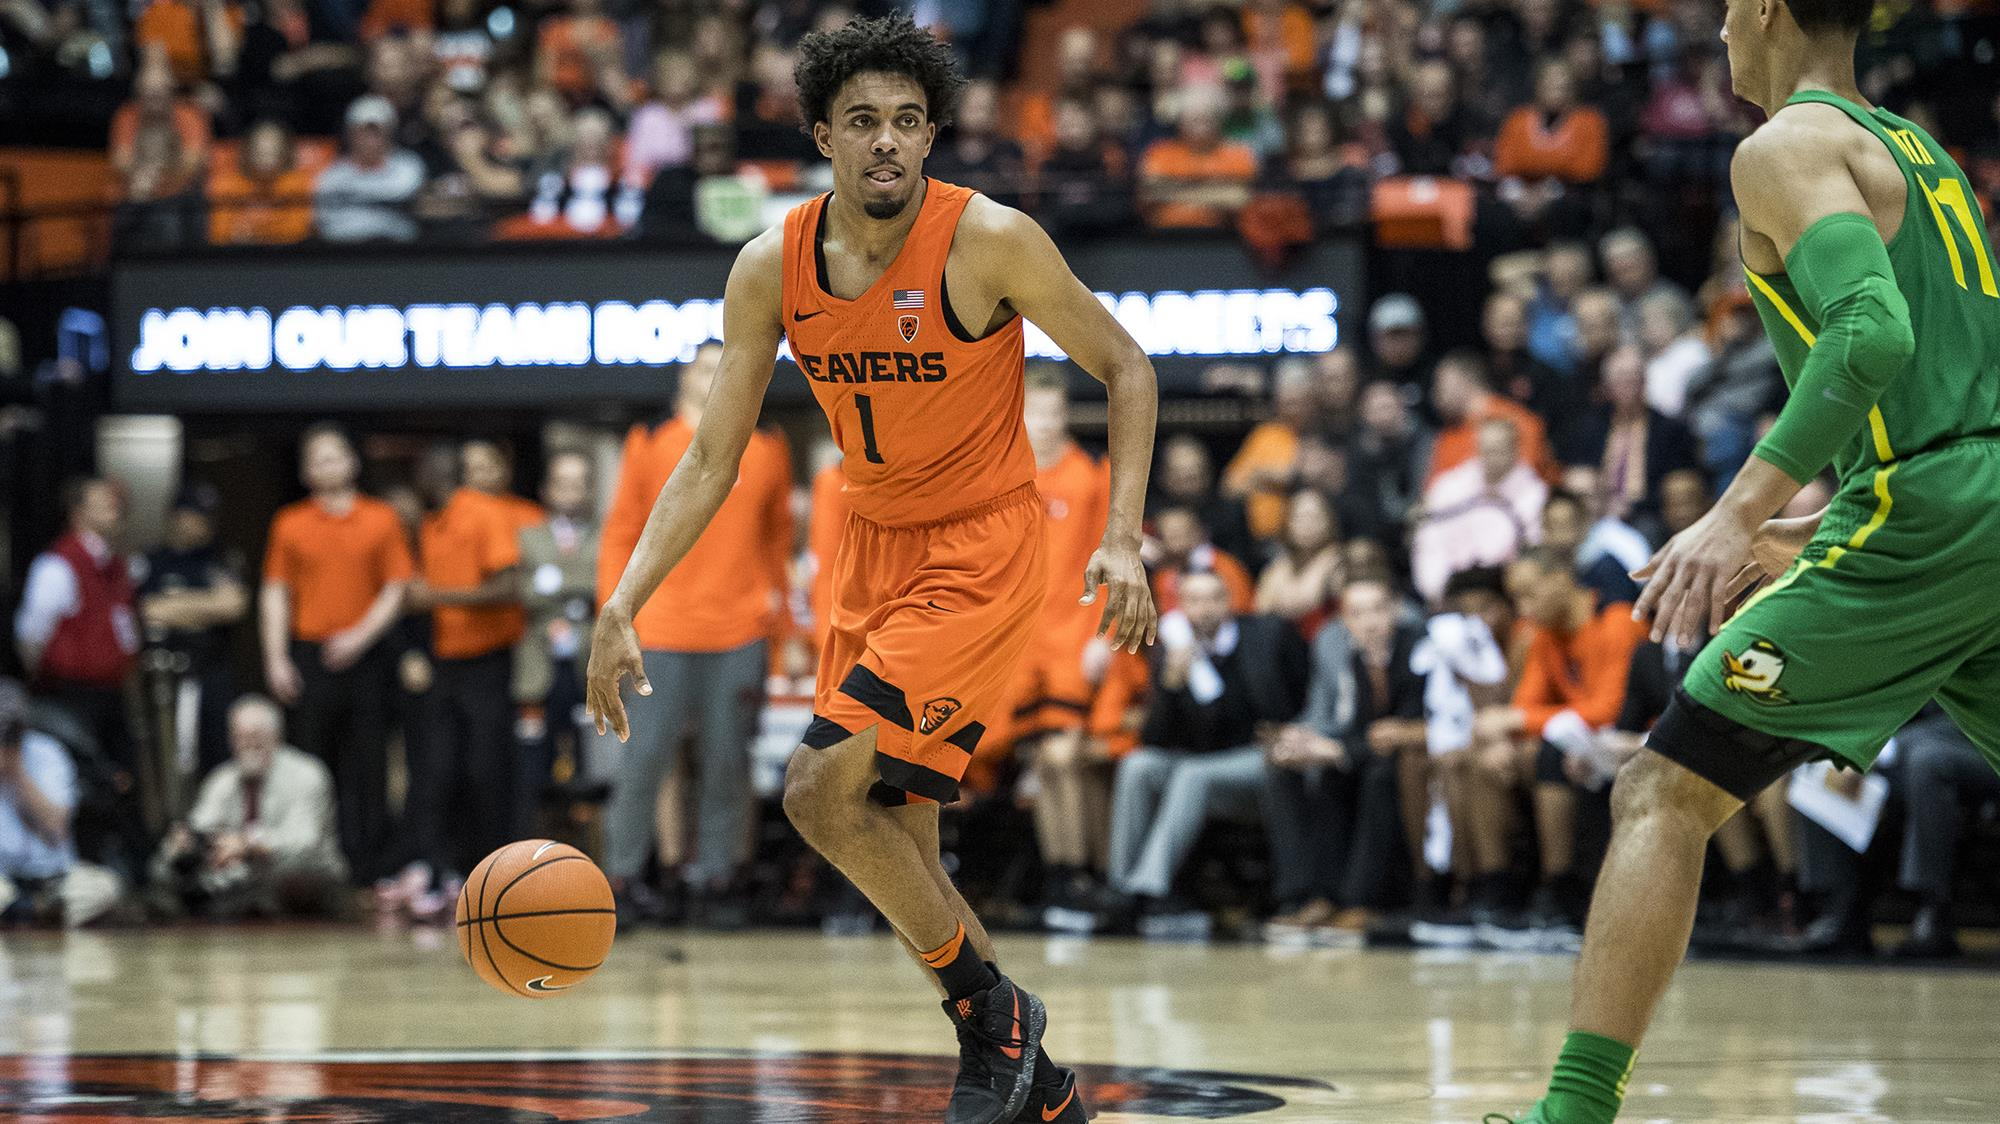 tv, dates, times announced for men's hoops - oregon state university